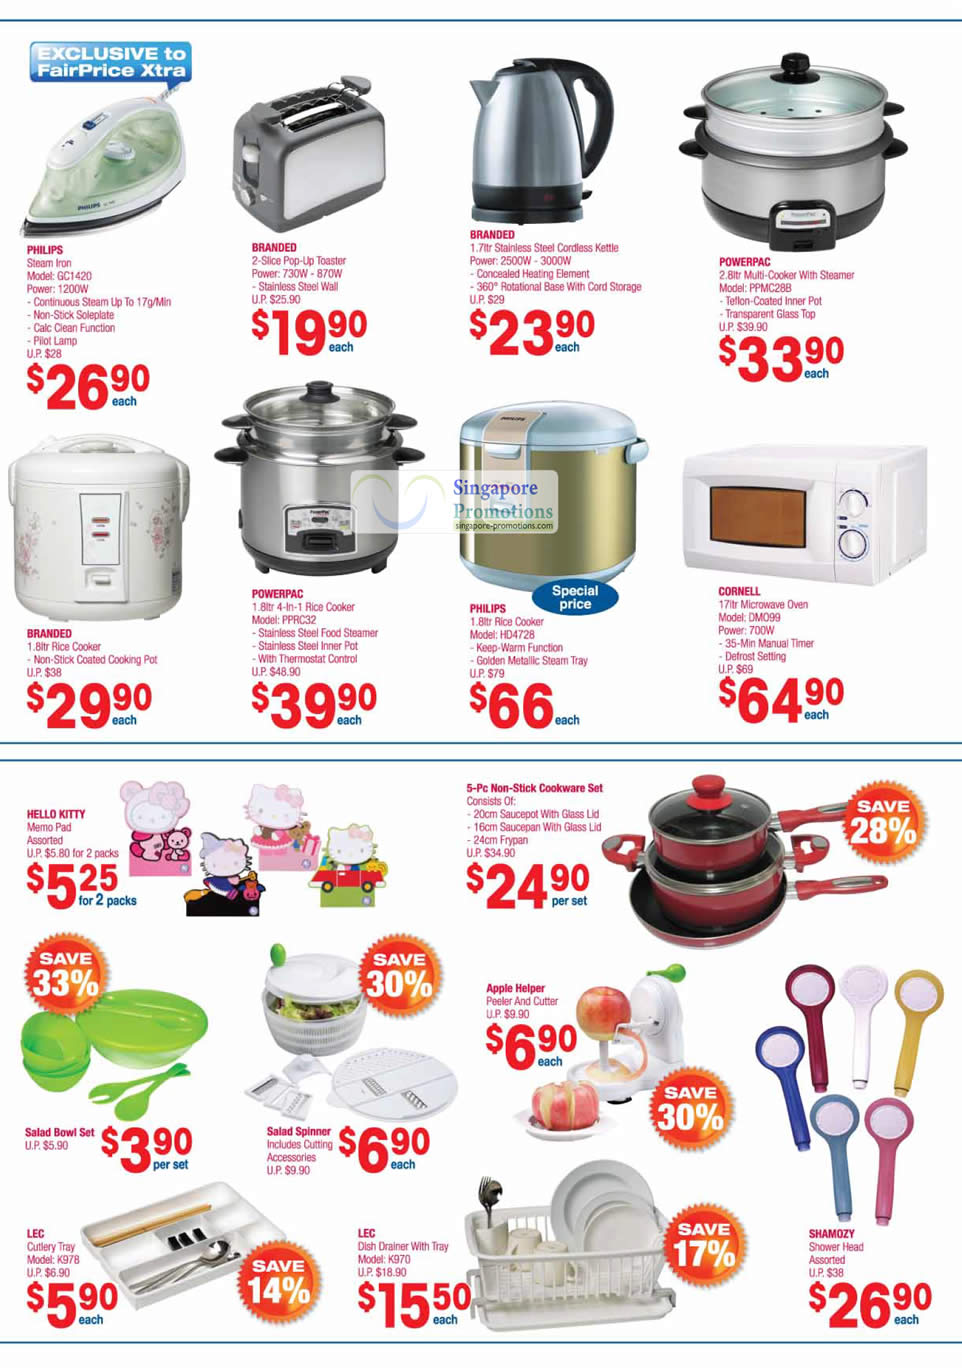 Philips Steam Iron GC1420, Powerpac Multi-Cooker With Steamer PPMC28B, Rice Cooker PPRC32, Philips HD4728 Rice Cooker